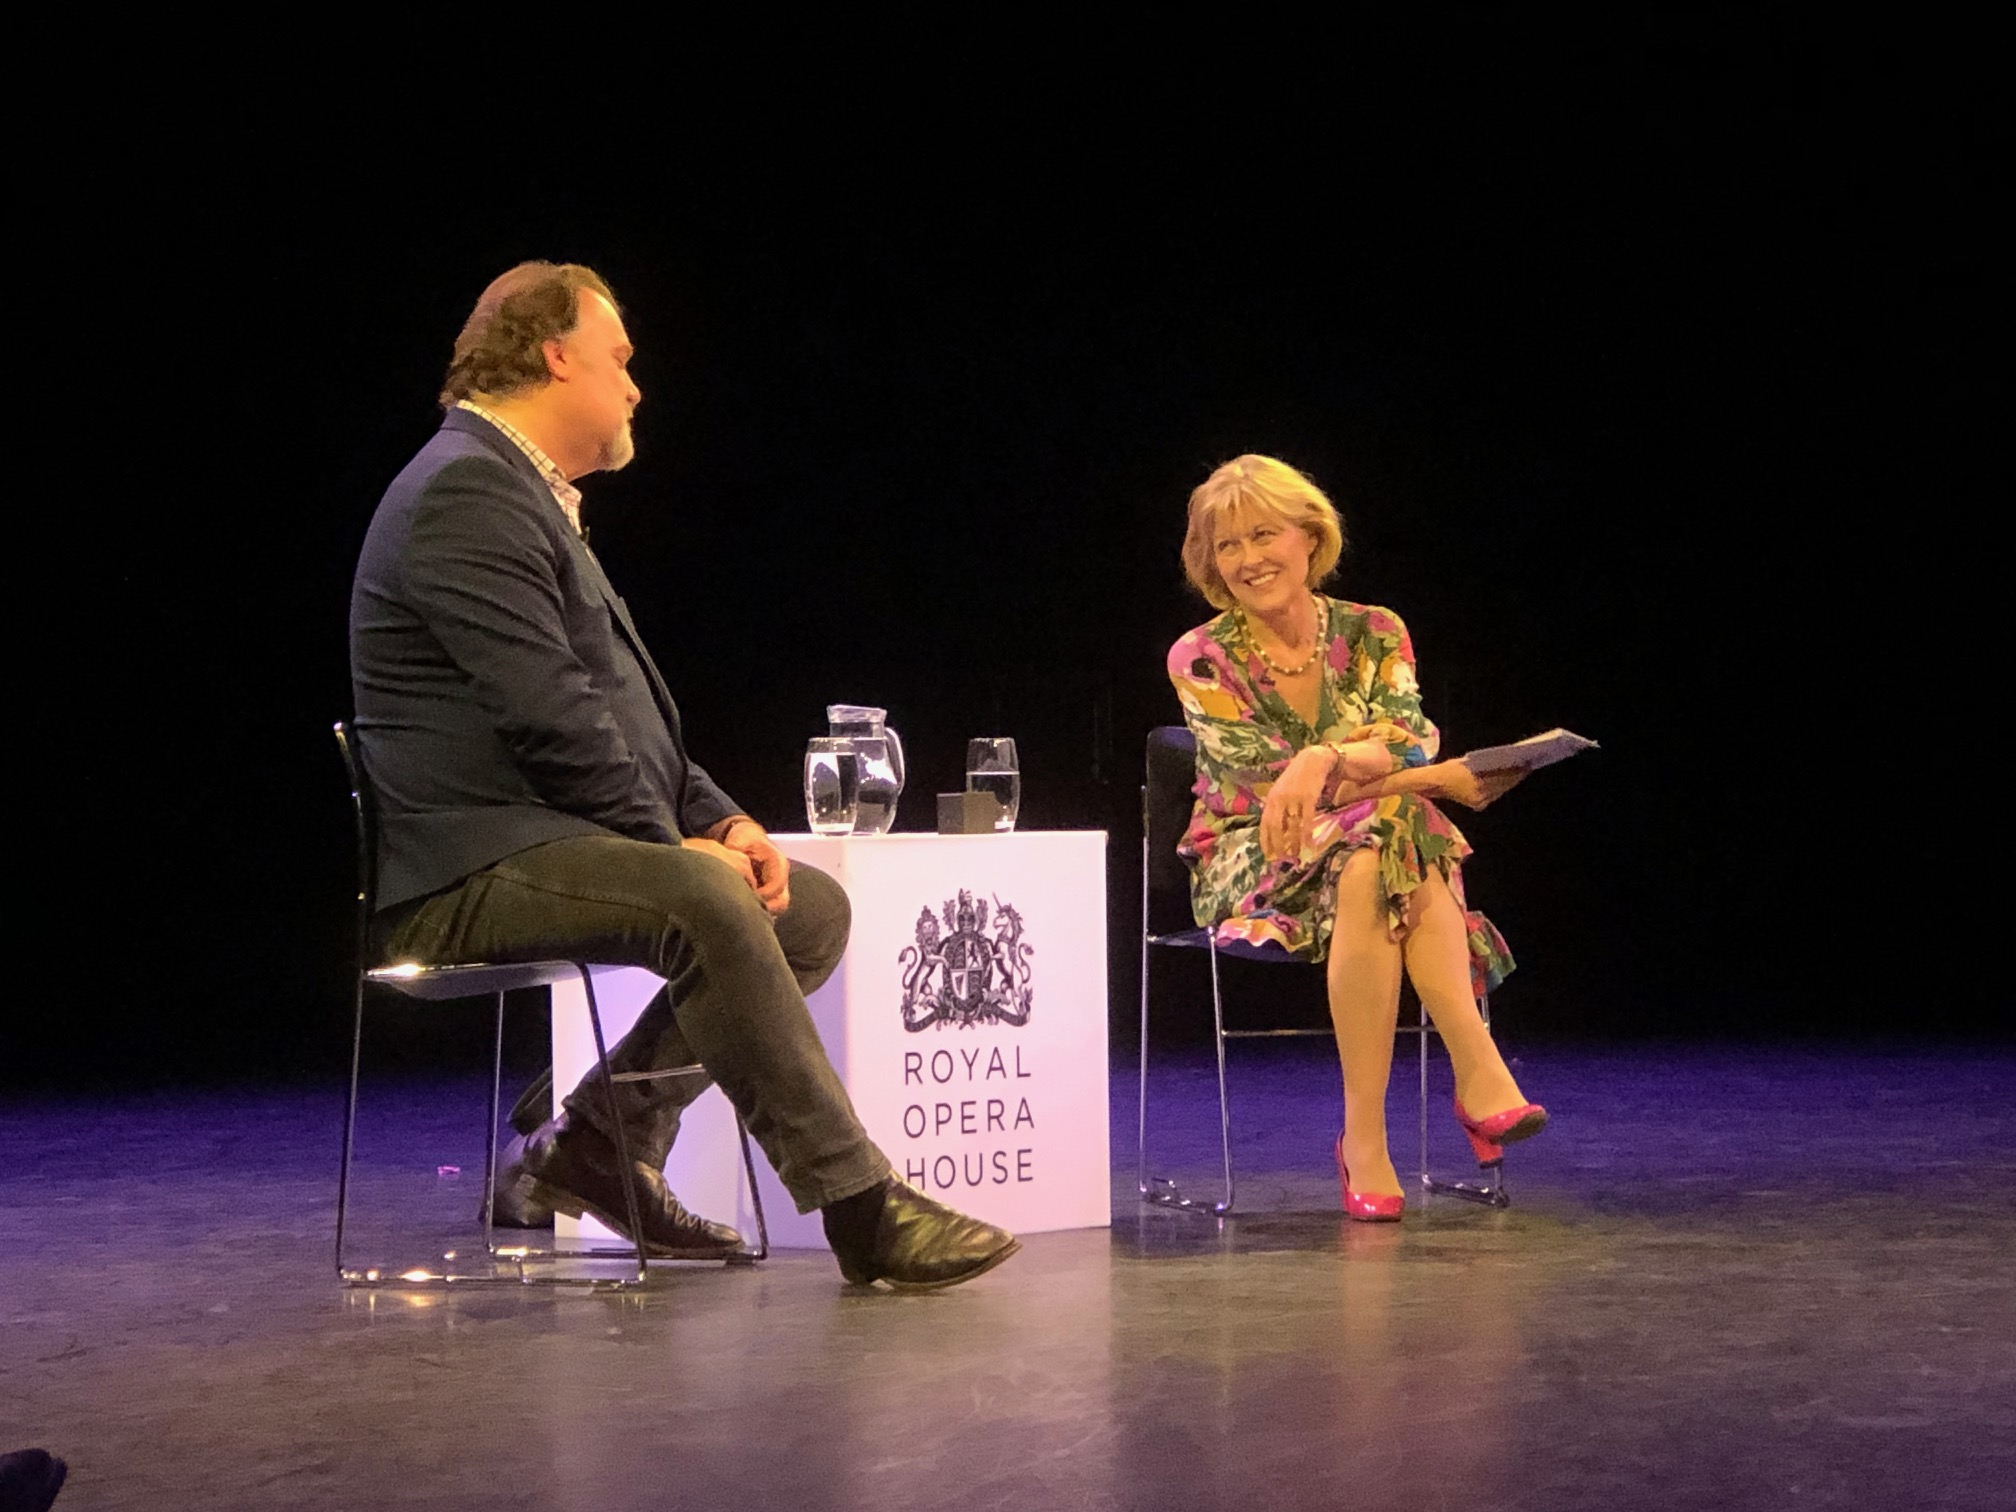 Presenter/Interviewer, An Evening with Sir Bryn Terfel